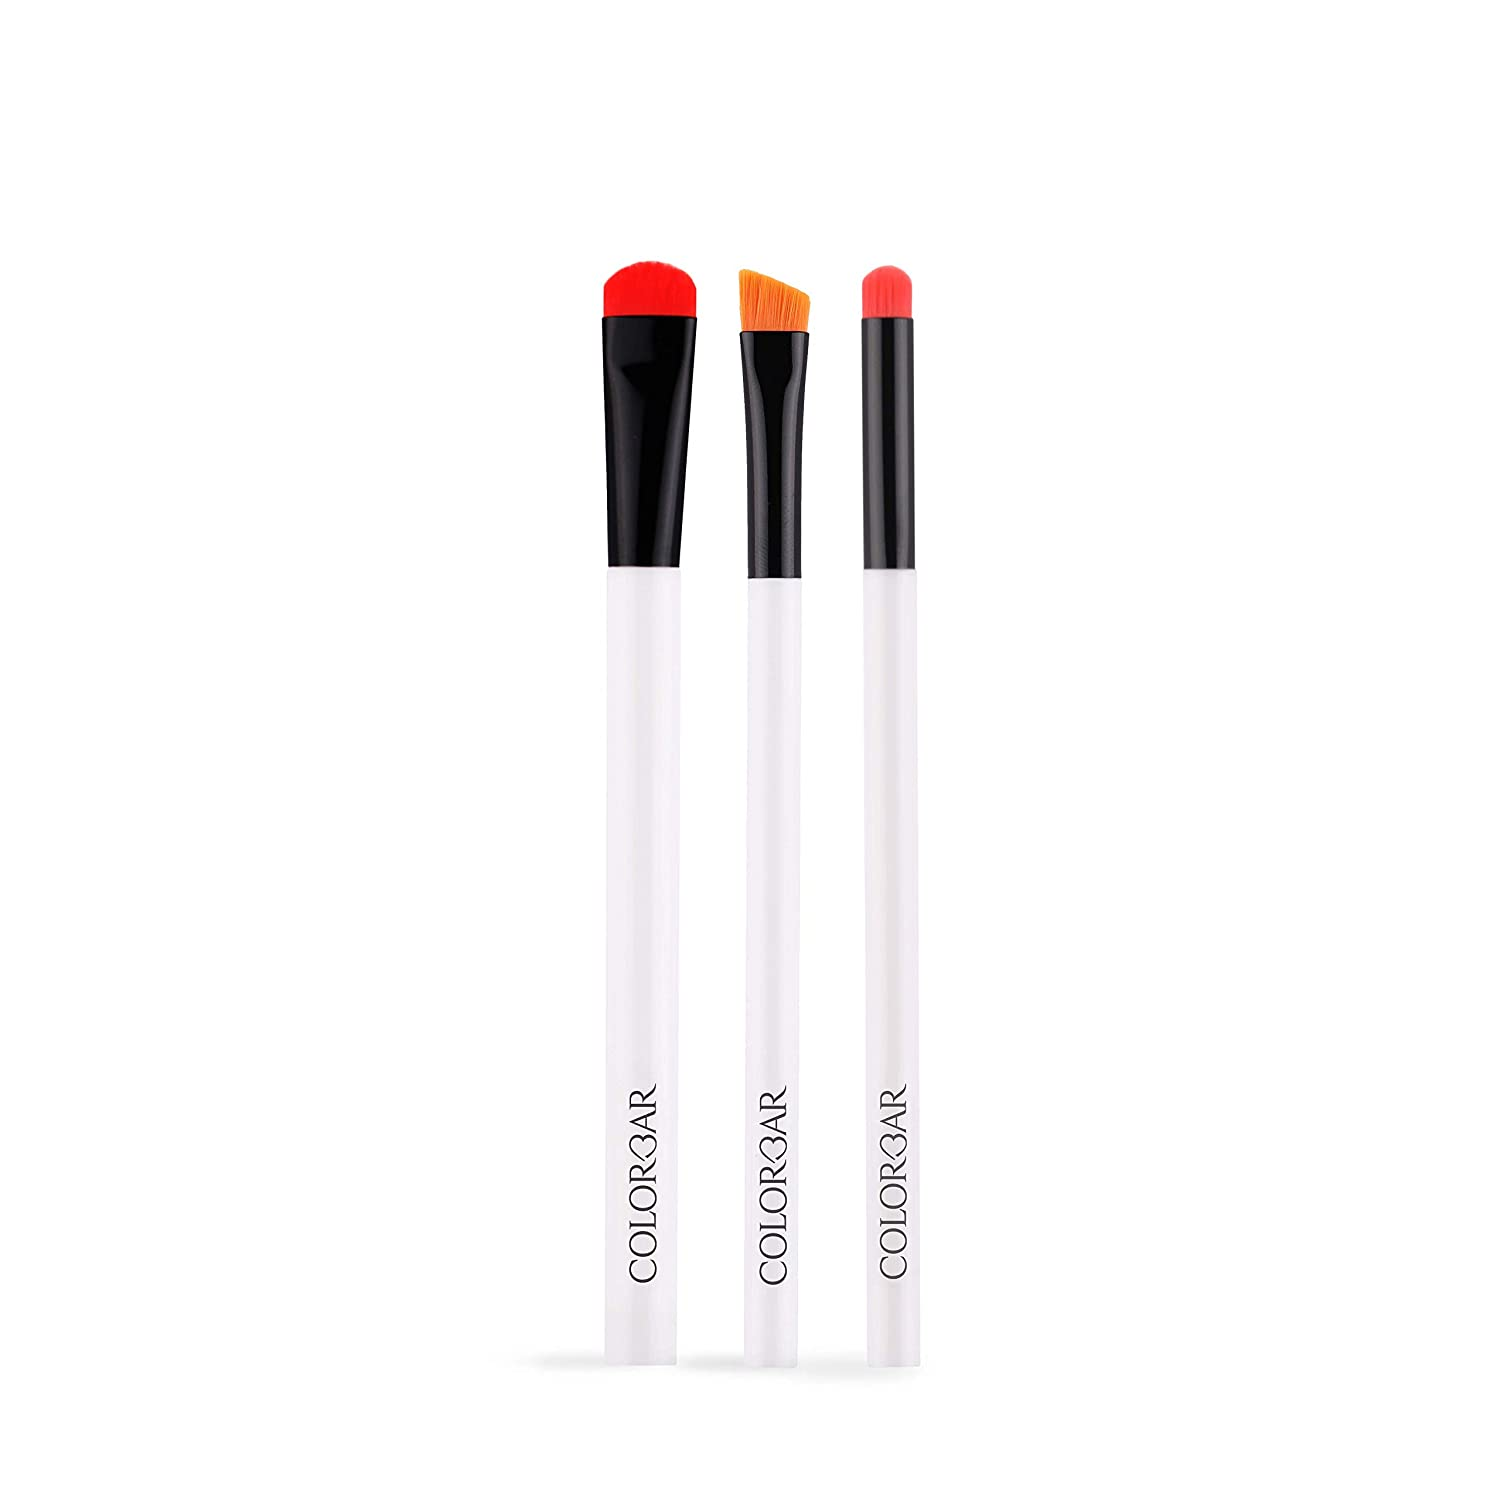 Colorbar Ready To Wink Eye Perfect Excellent Makeup Product Kit